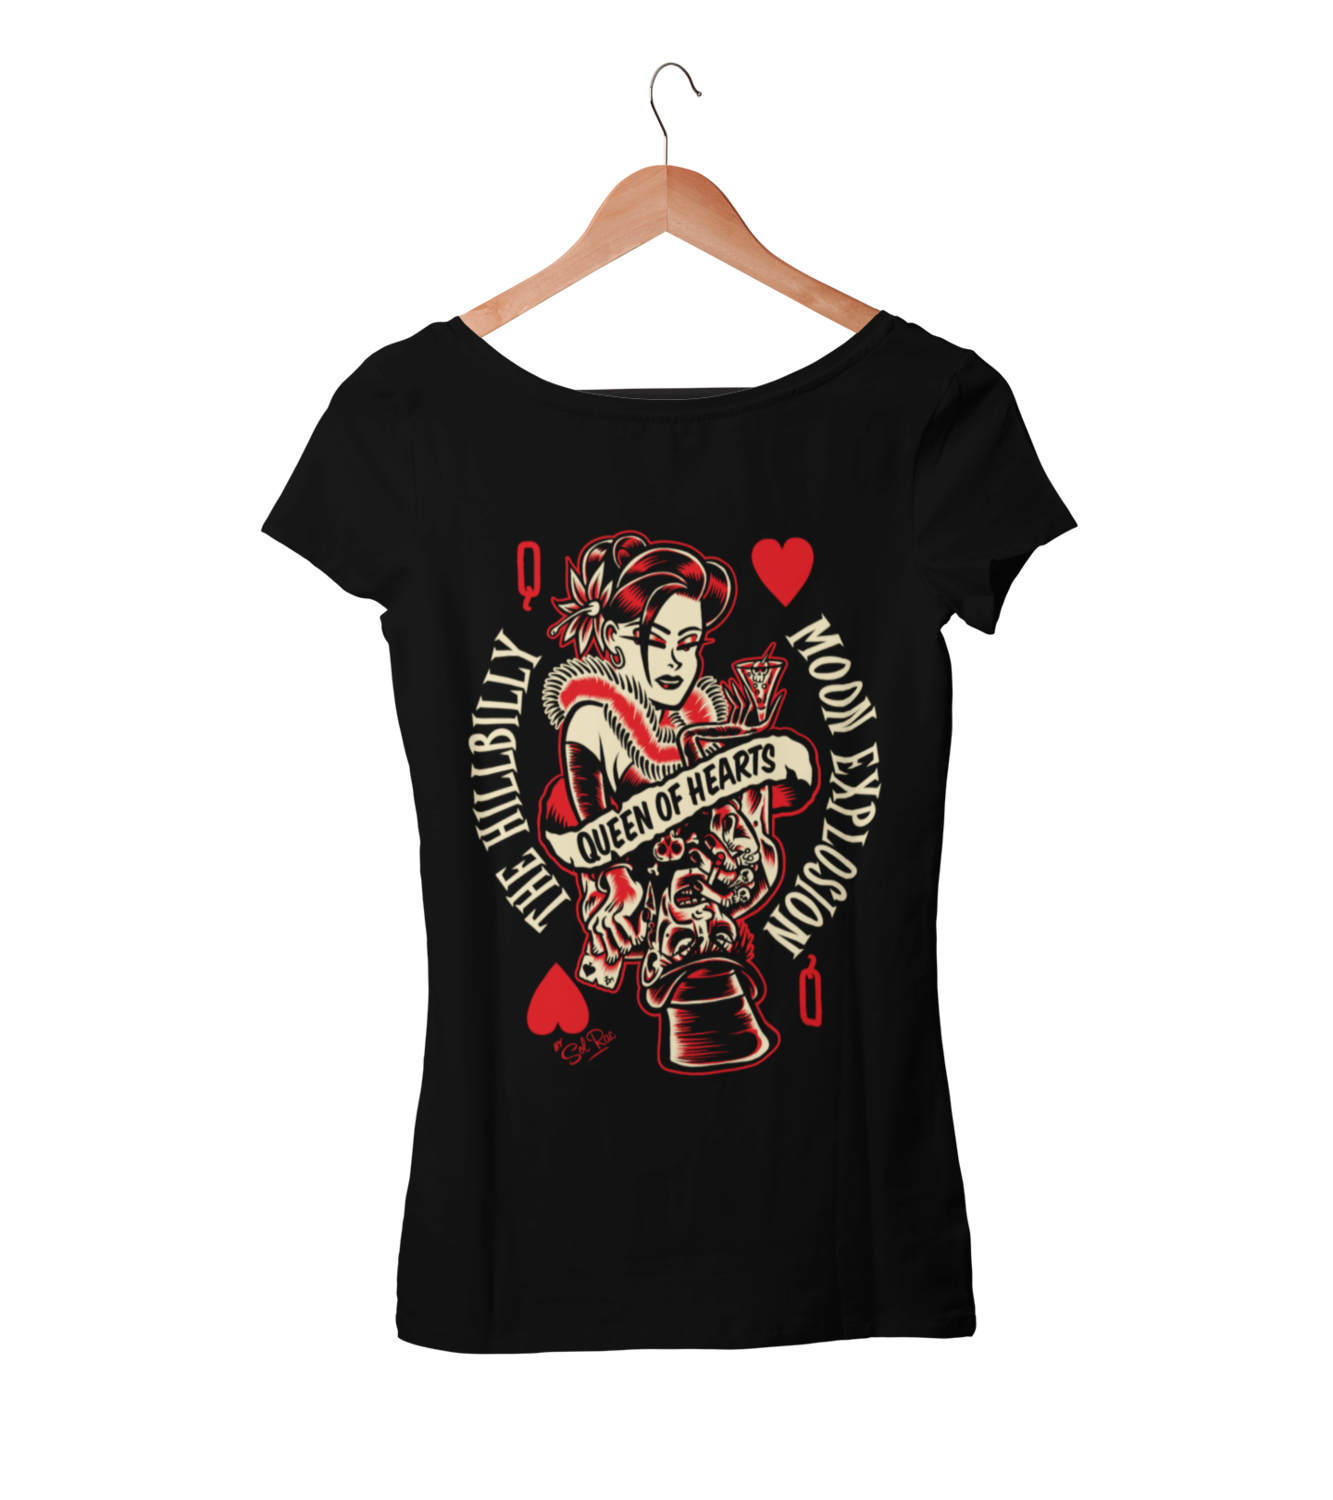 "HILLBILLY MOON EXPLOSION ""Queen of Hearts"" tshirt for WOMEN by Solrac"